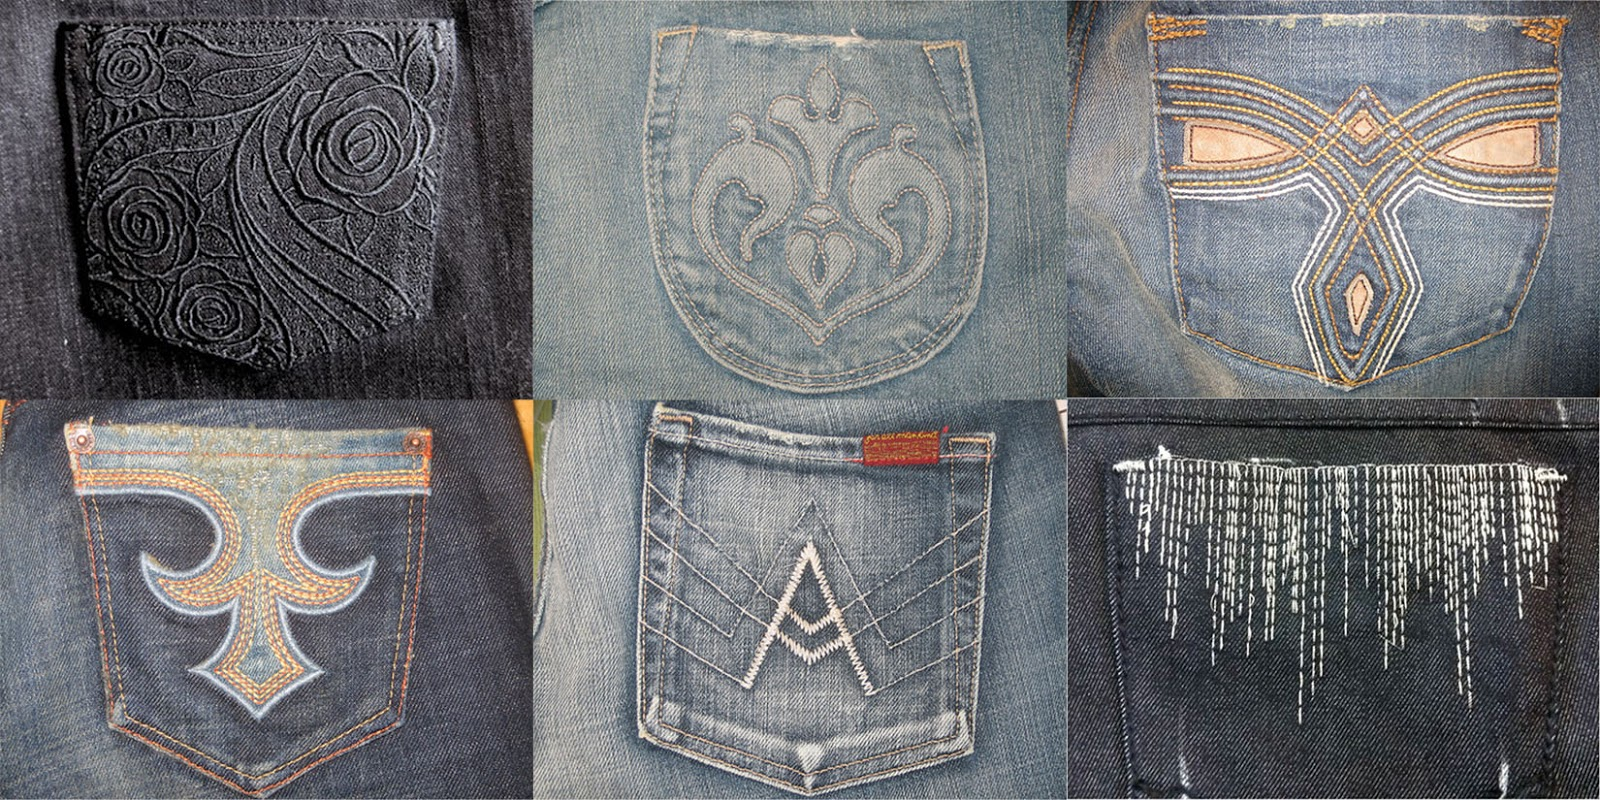 Unlikely ginger jeans back pocket design inspiration